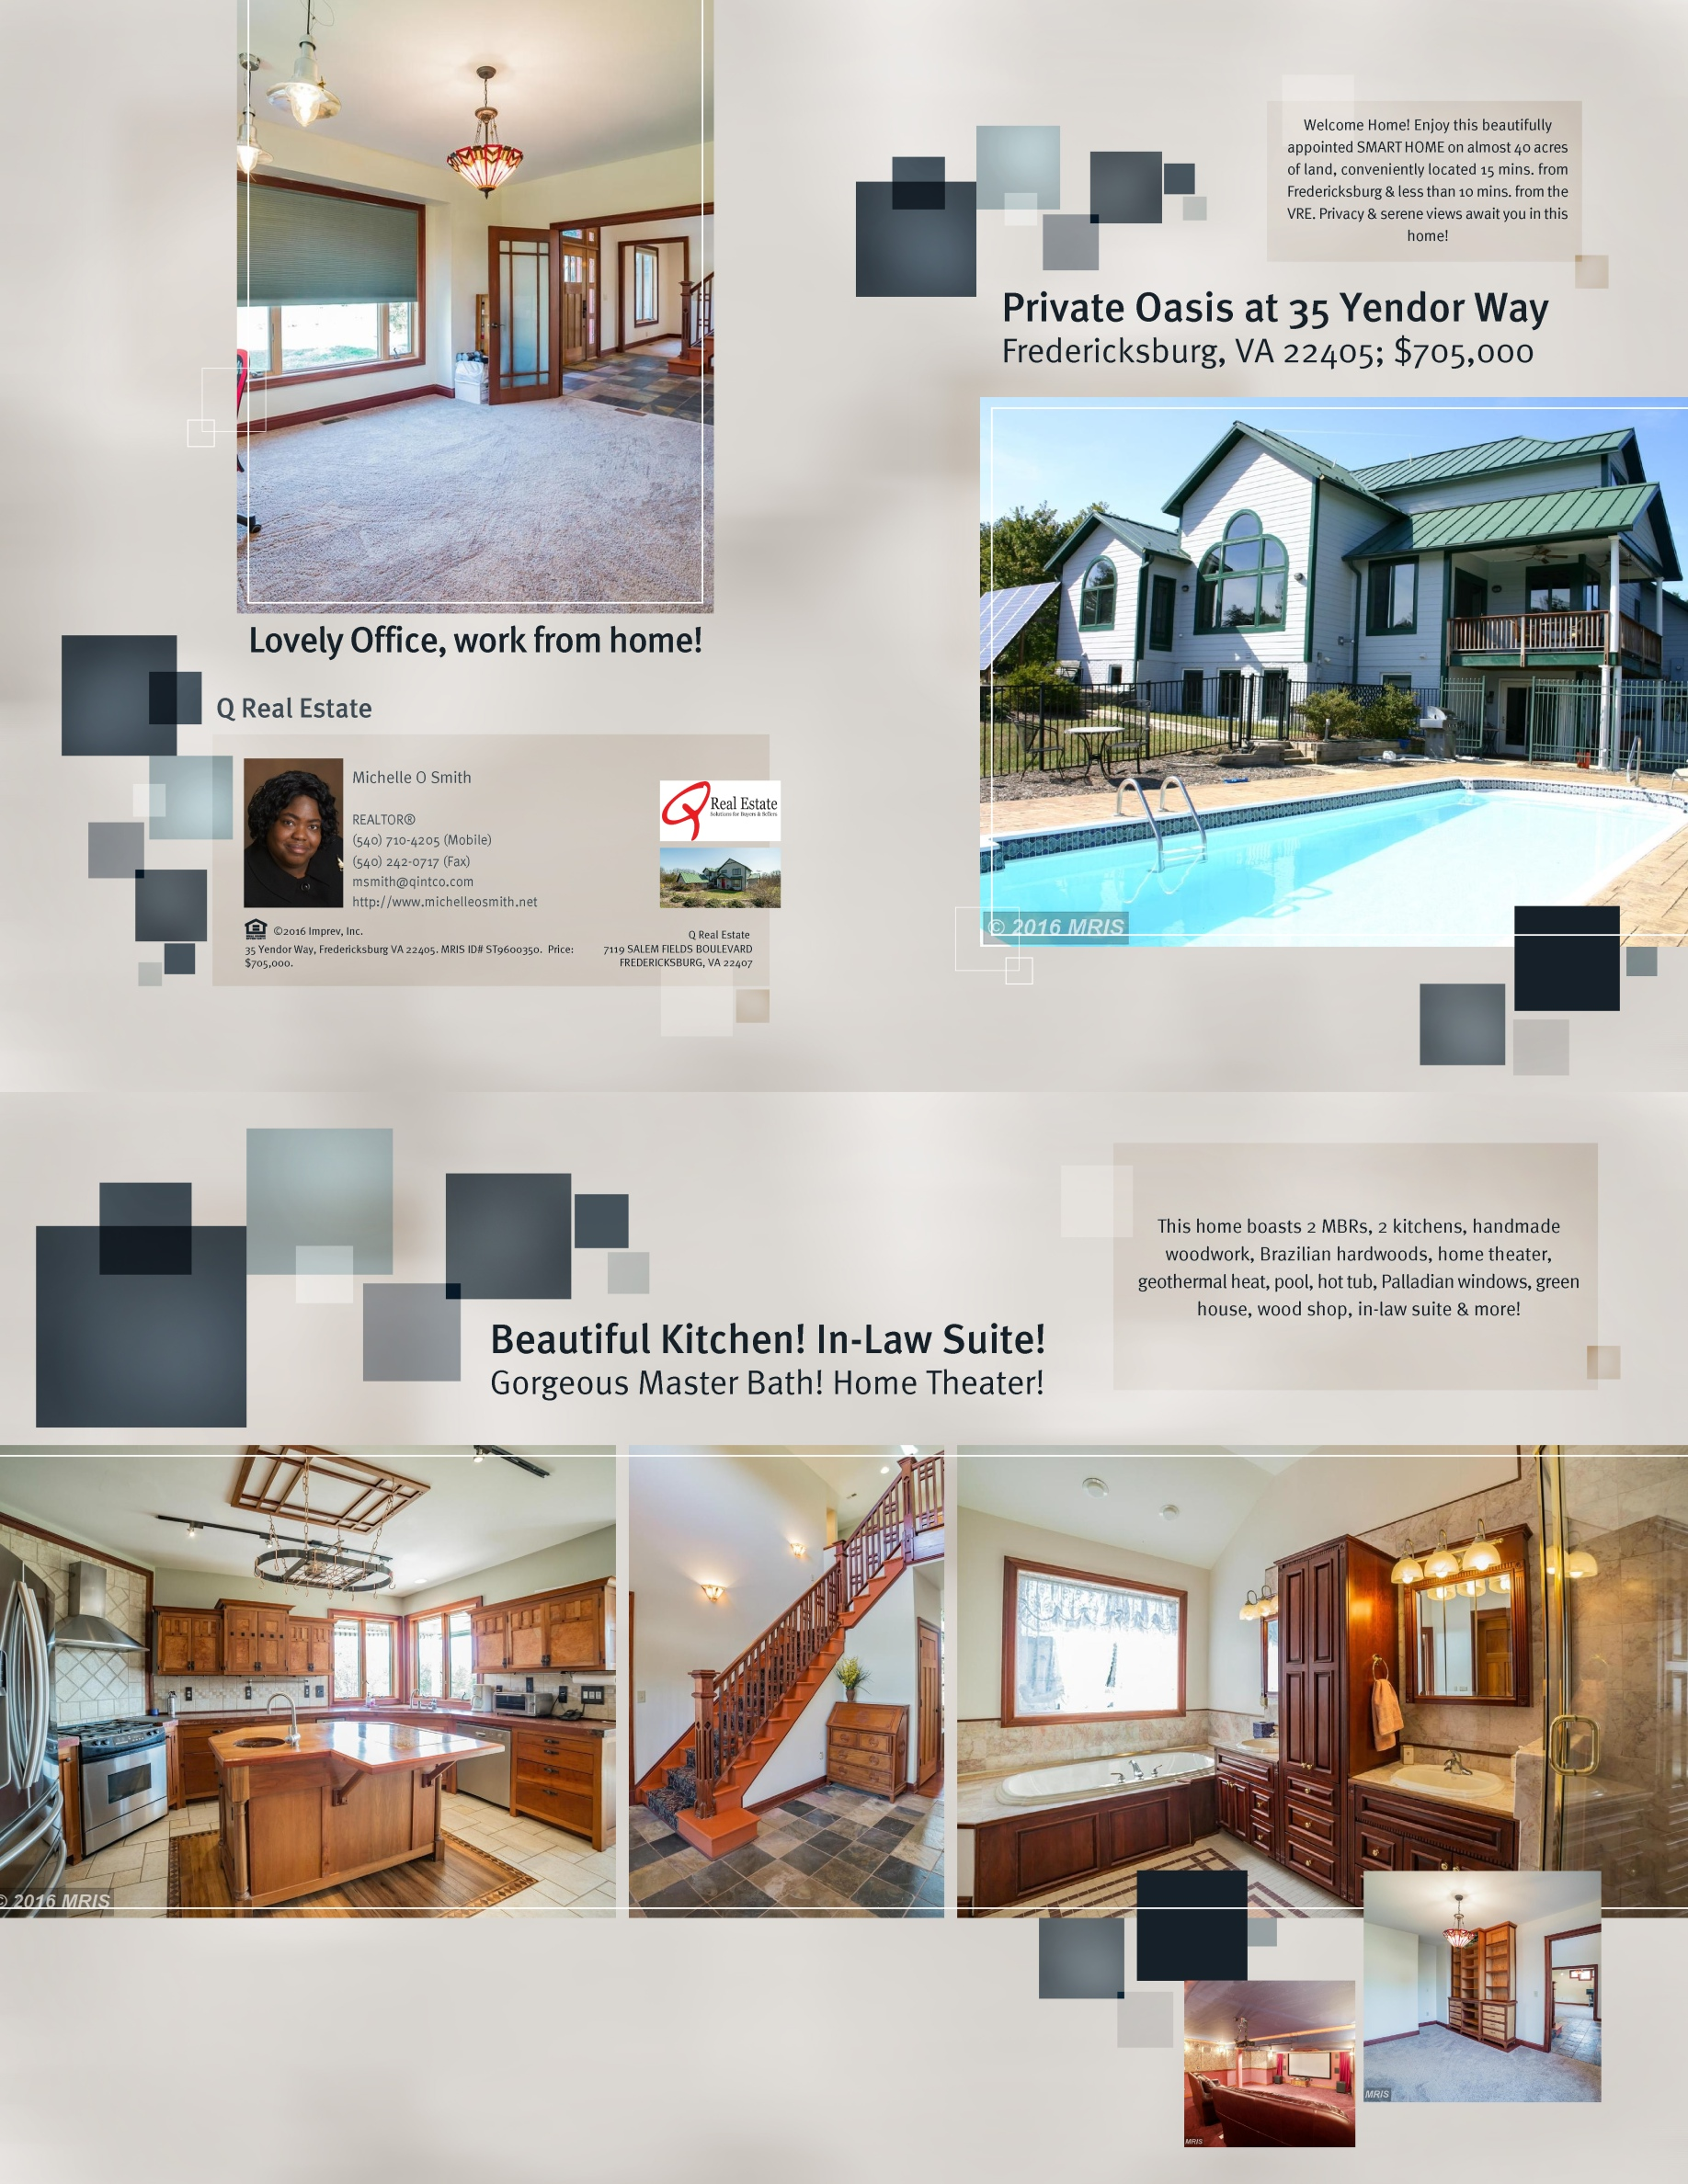 falmouth va real estatte | the lord & smith team powered